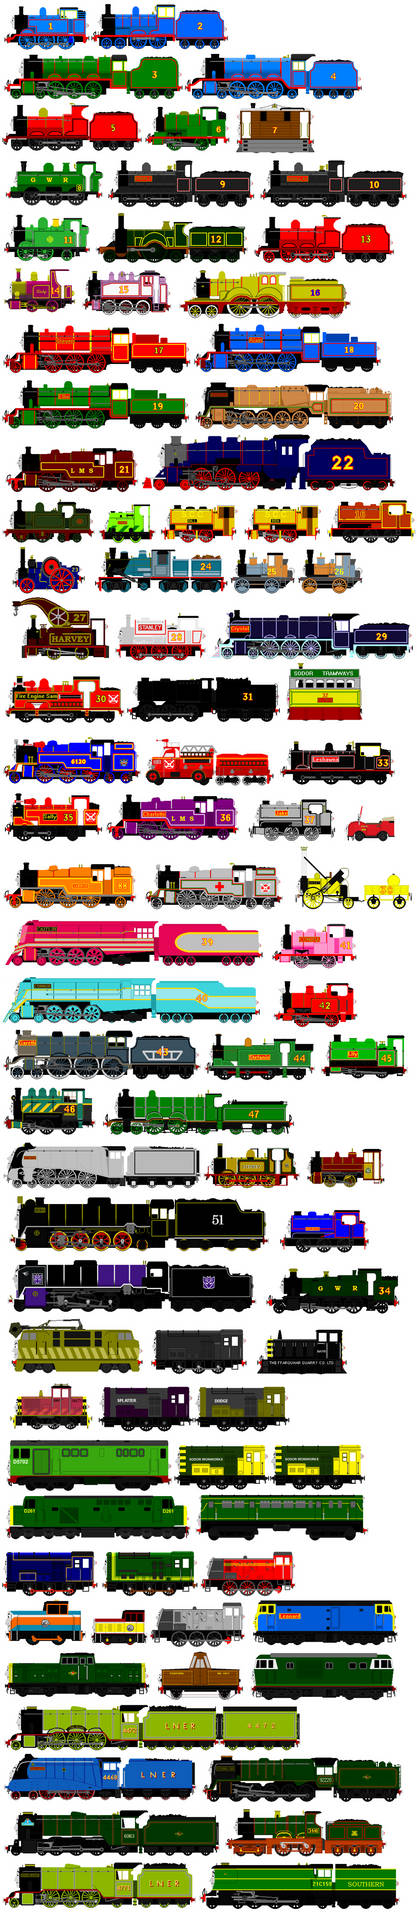 Thomas And Friends Animated Characters 11 By Jamesfan1991 On Deviantart